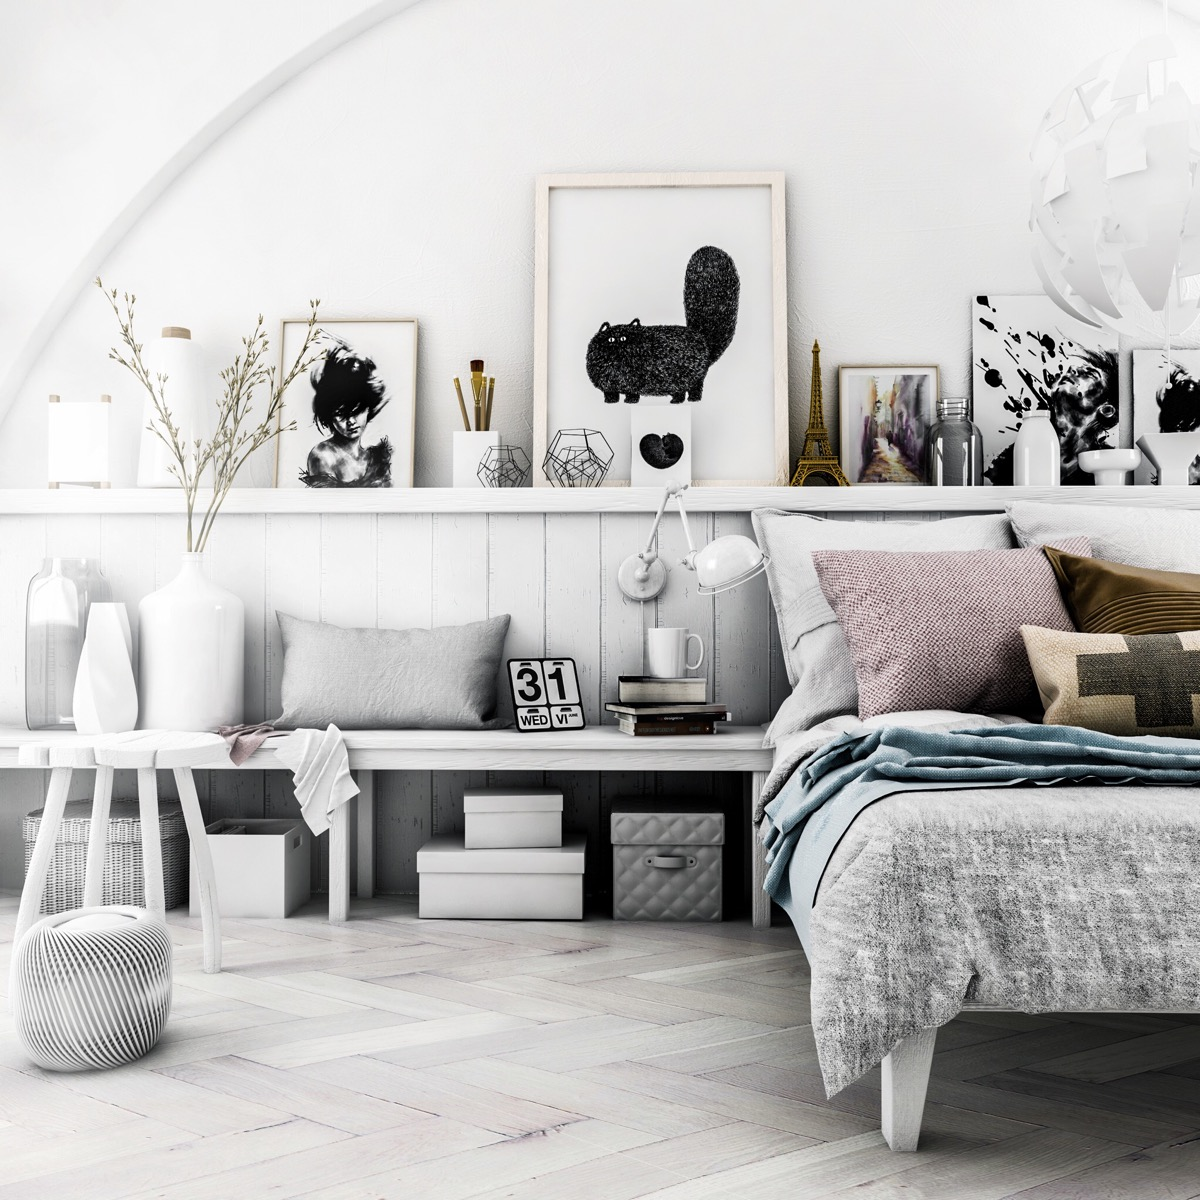 HOME DESIGNING: 40 Beautiful Bedrooms That We Are In Awe ... on Room Decor Aesthetic id=66374